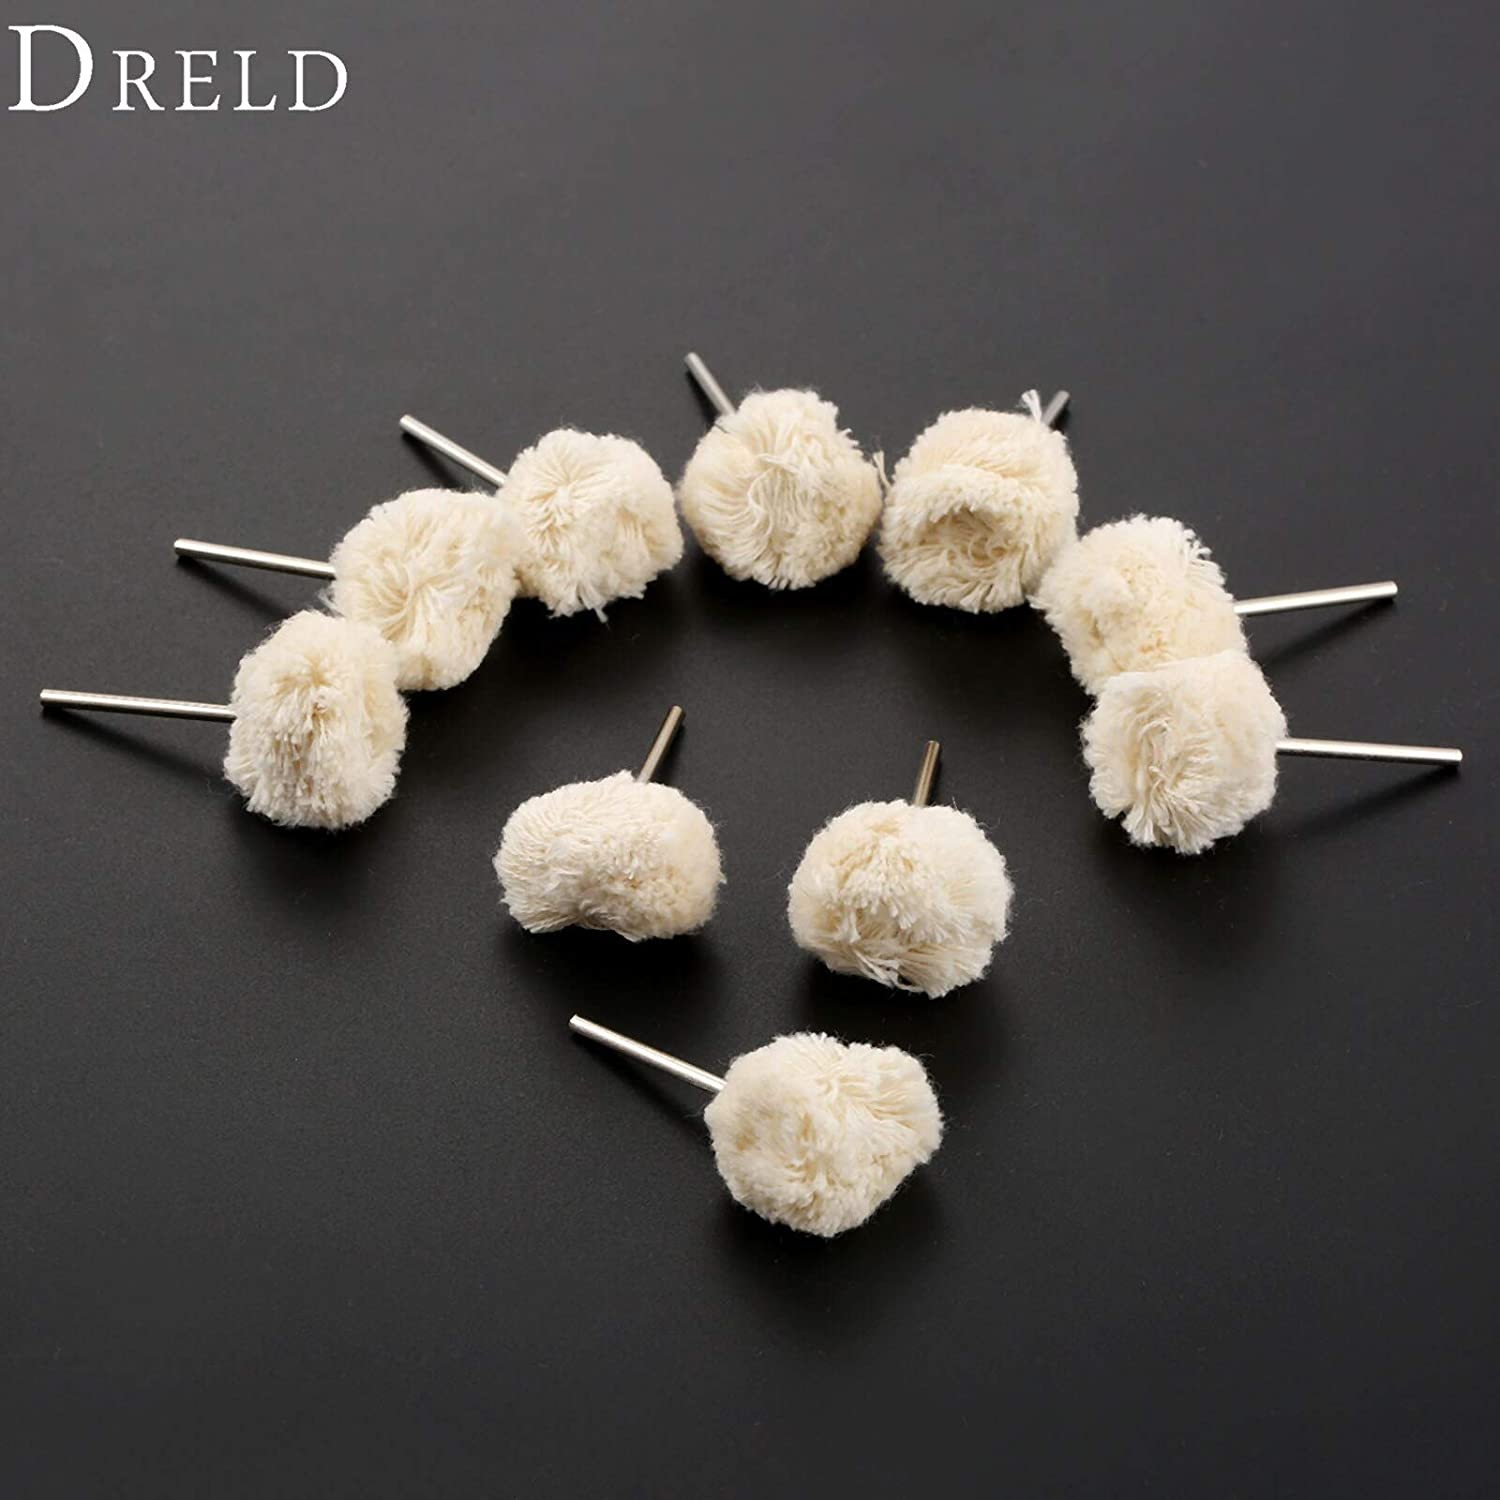 10Pcs Accessories 22mm Wool Polishing Buffing Wheels 2.35mm Shank Jewelry Metals Grinding for Drill Rotary Tools